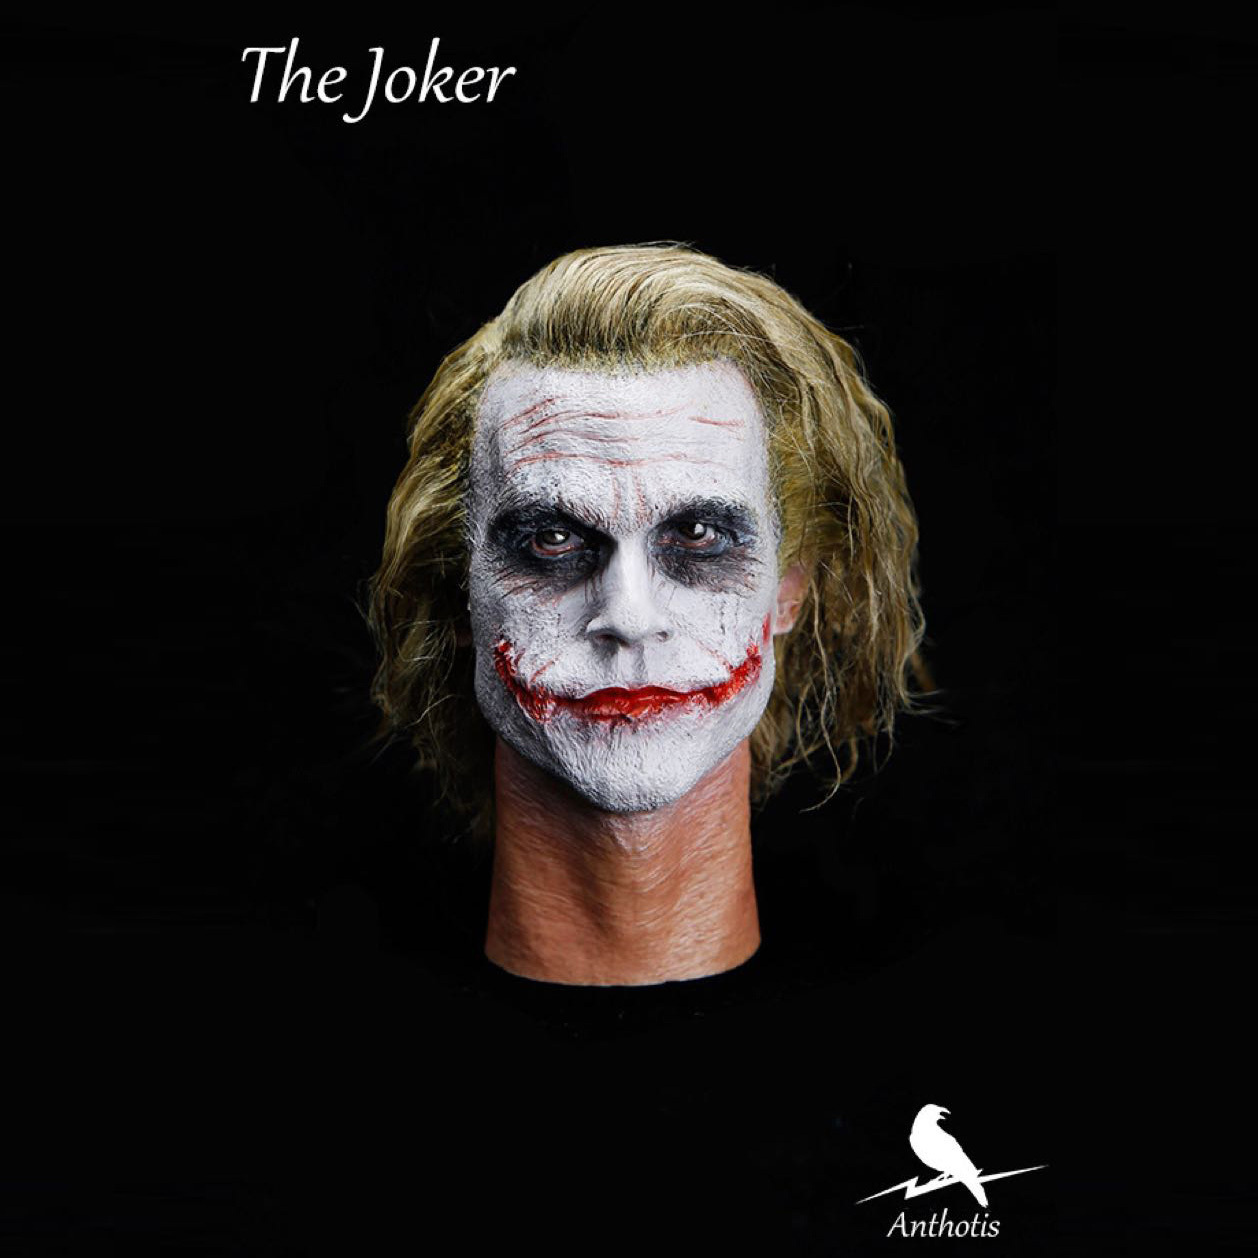 New MJ12 1/6 Scale Master Edition Clown Head Carving Joker Heath Ledger Head Shape for 12 Action Figure Dolls Toys mnotht 1 6 male solider new clown head carving mj12 top edition heath ledger head sculpt for 12in action figures l30